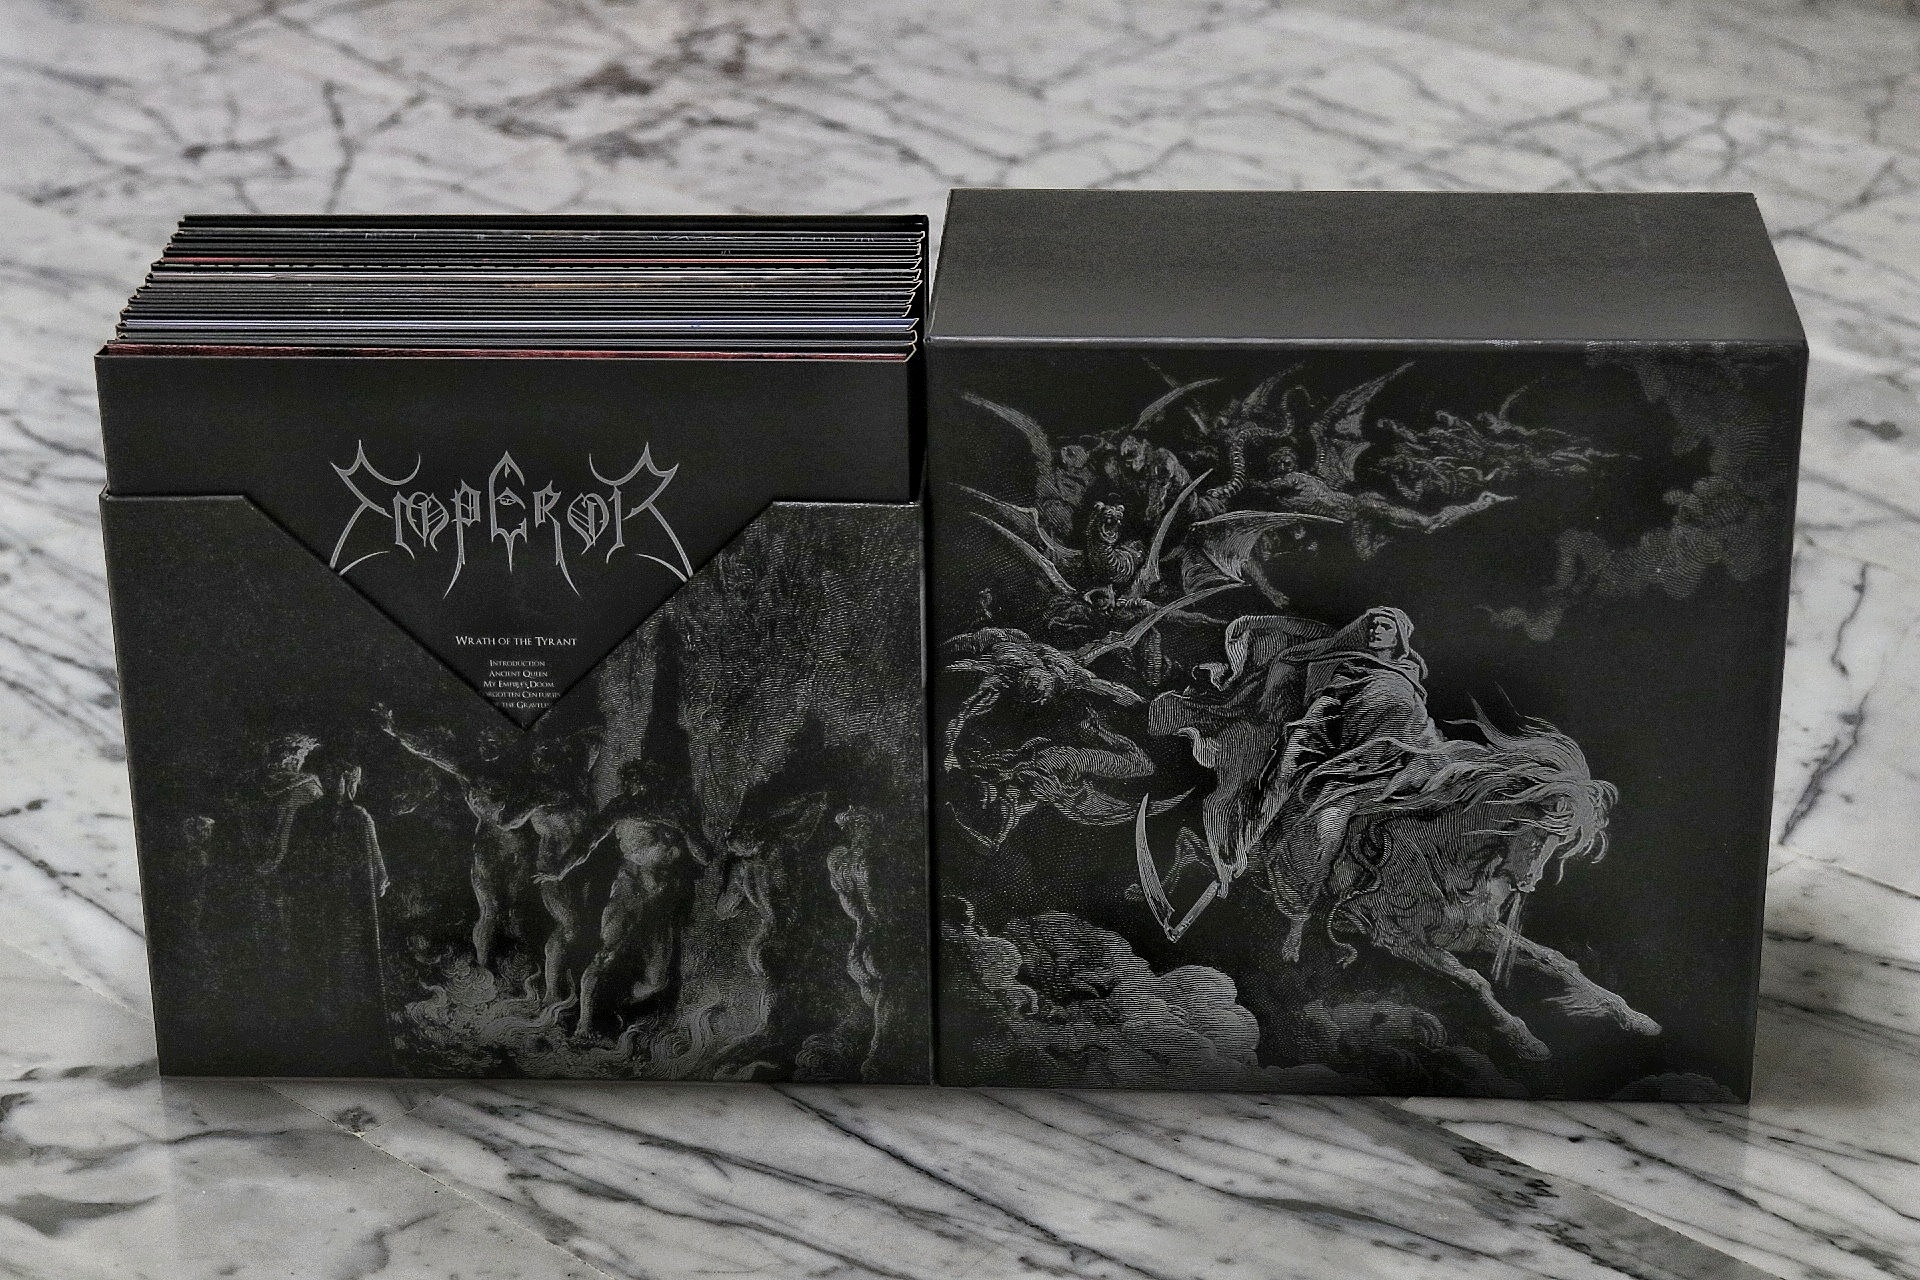 emperor, vinyl boxset, blood music, black metal, norway